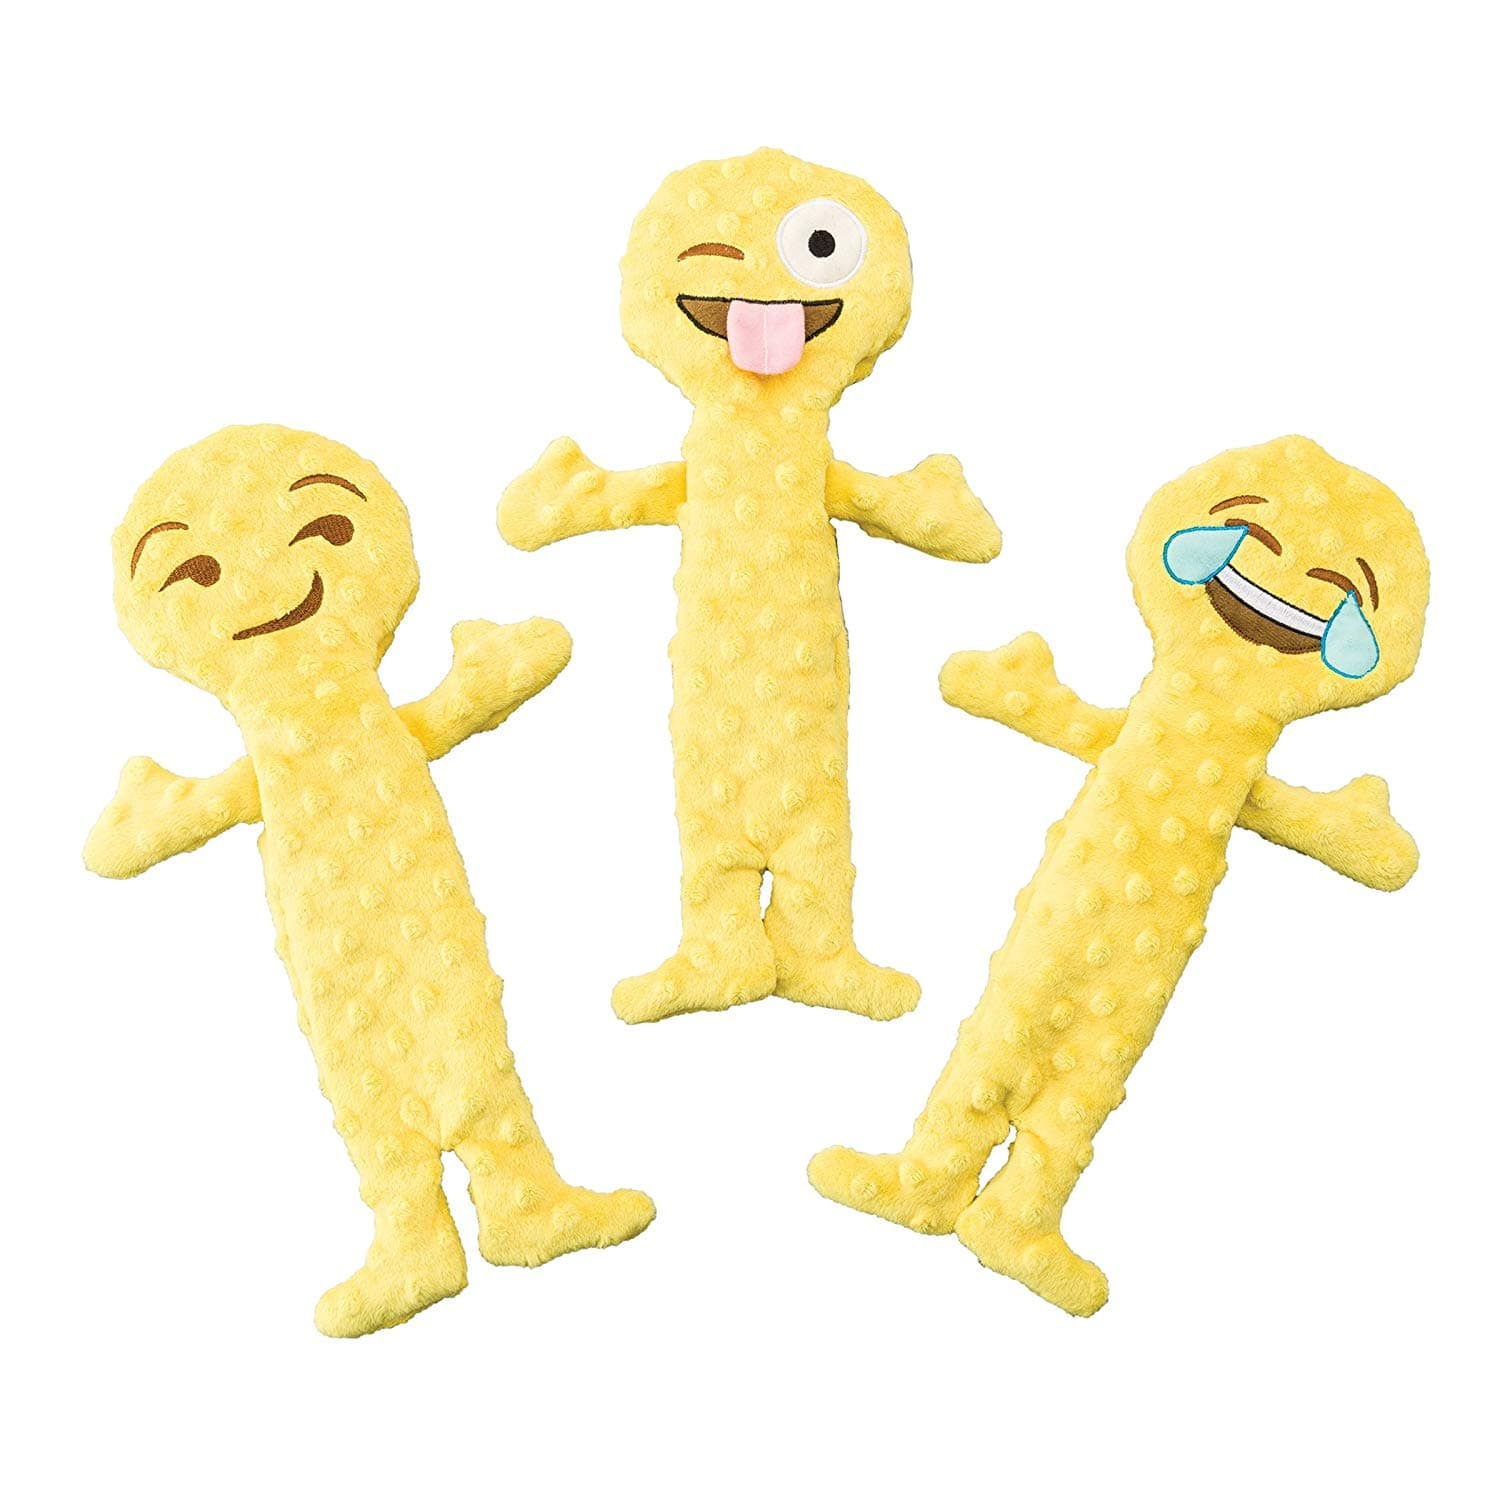 SPOT Ethical Pet Skinneeez Stuffingless Dog Toys - 14in Emoji $1.77, 24in Flying Squirrel $2.36 and More - FS w/ Prime